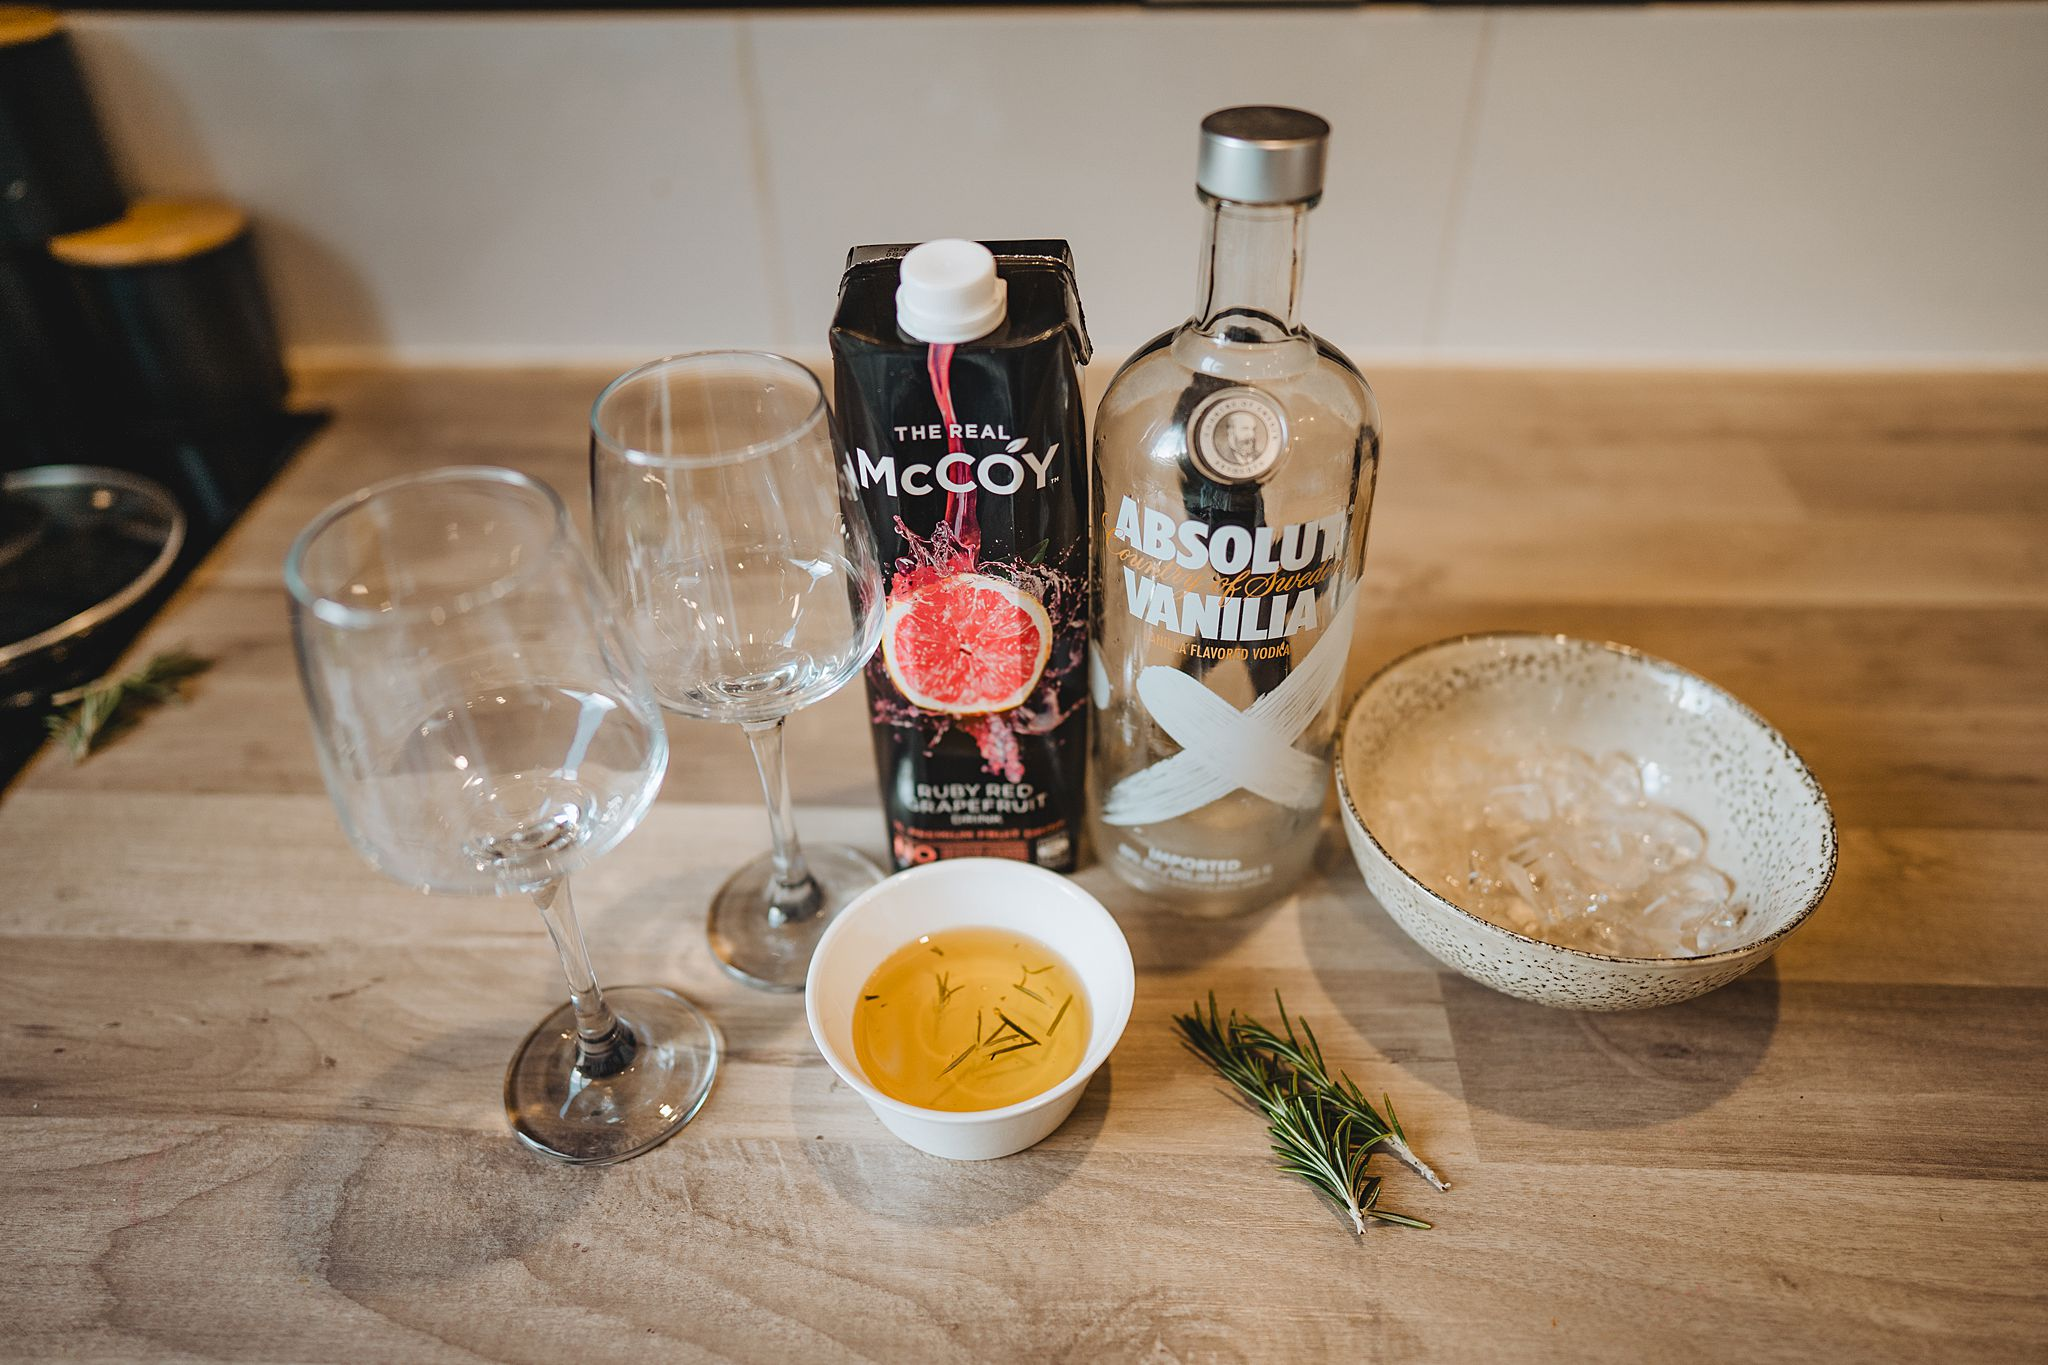 Ingredients for vodka grapefruit and rosemary cocktail